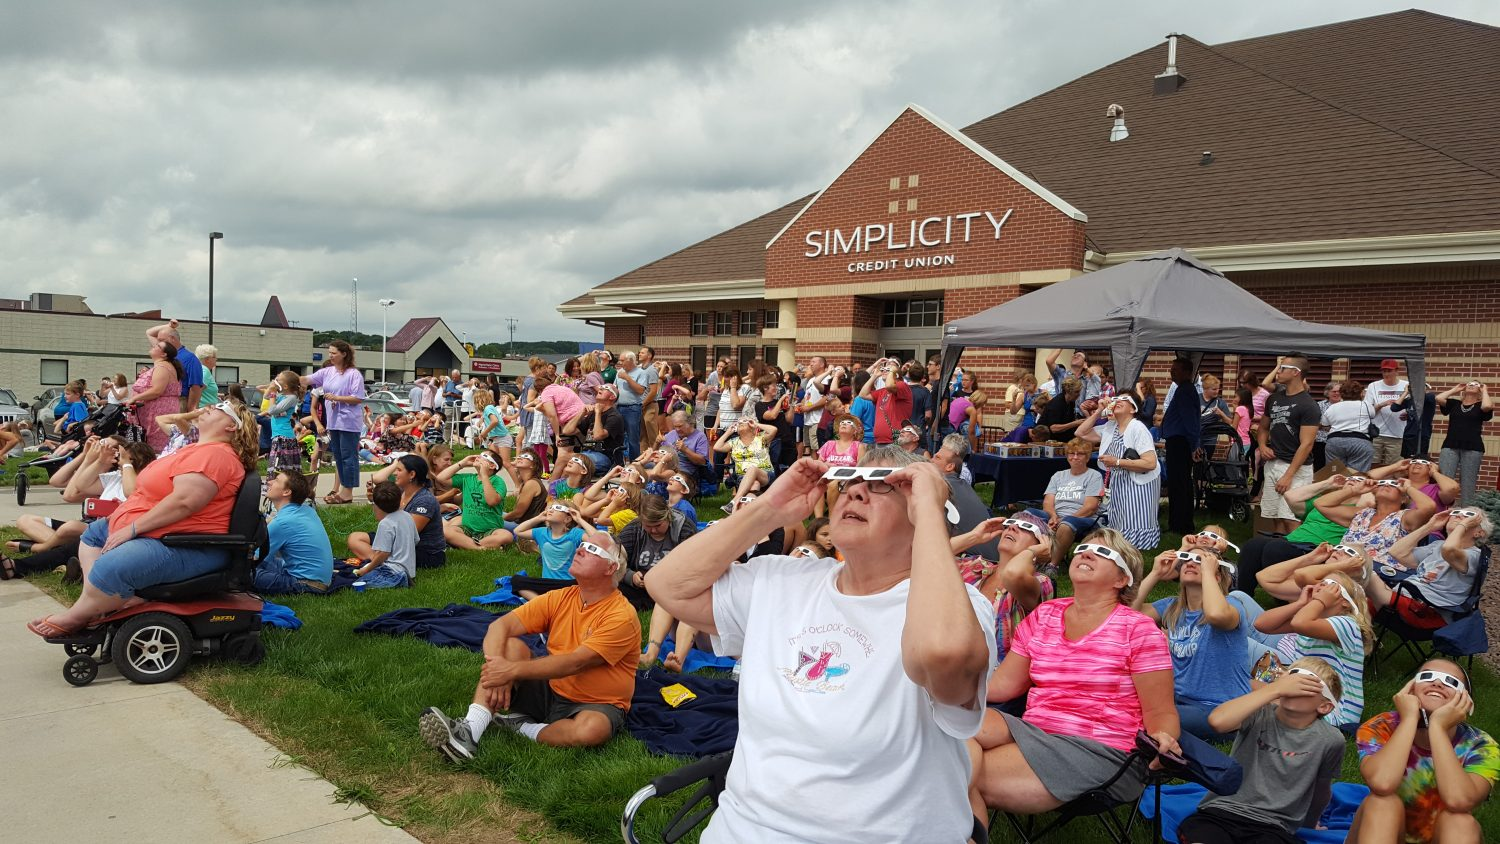 Simplicity Credit Union held an eclipse viewing party on Aug. 21.